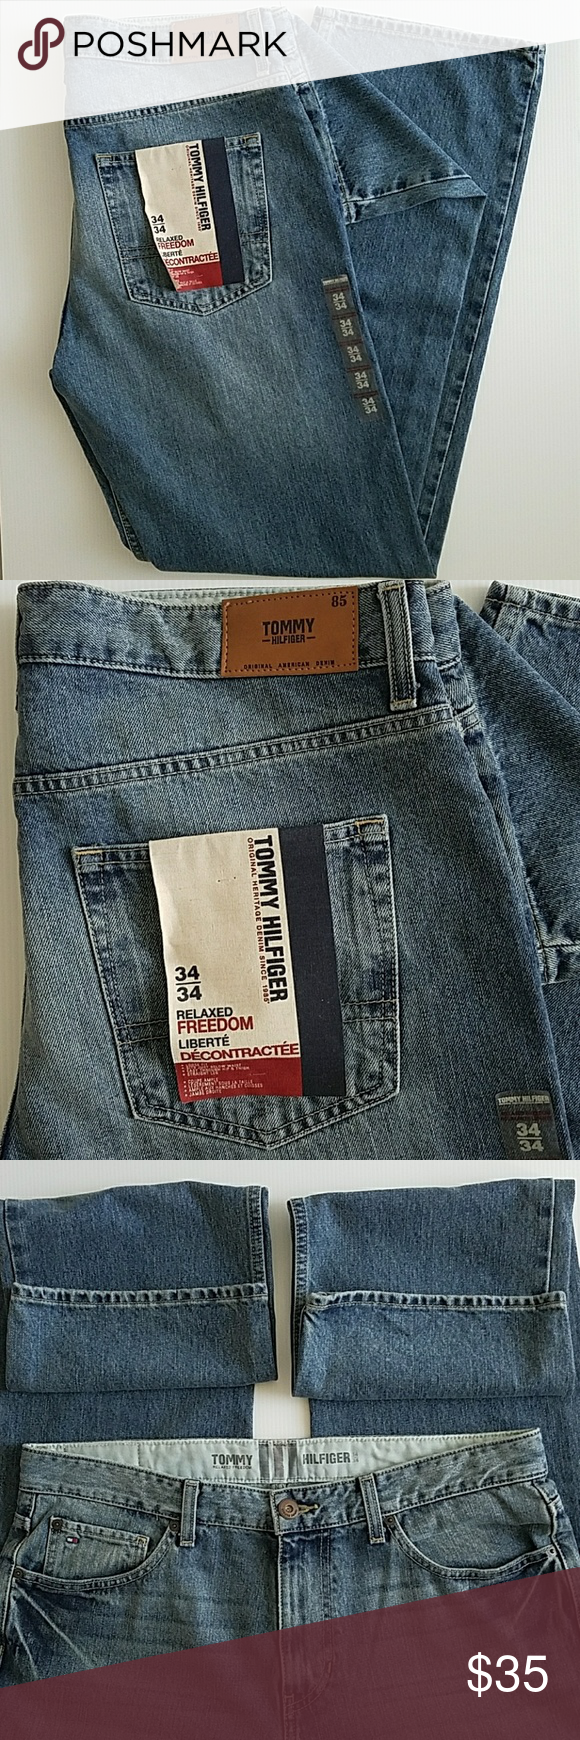 Tommy Hilfiger Relaxed Freedom Jeans 34W 34L New Tommy